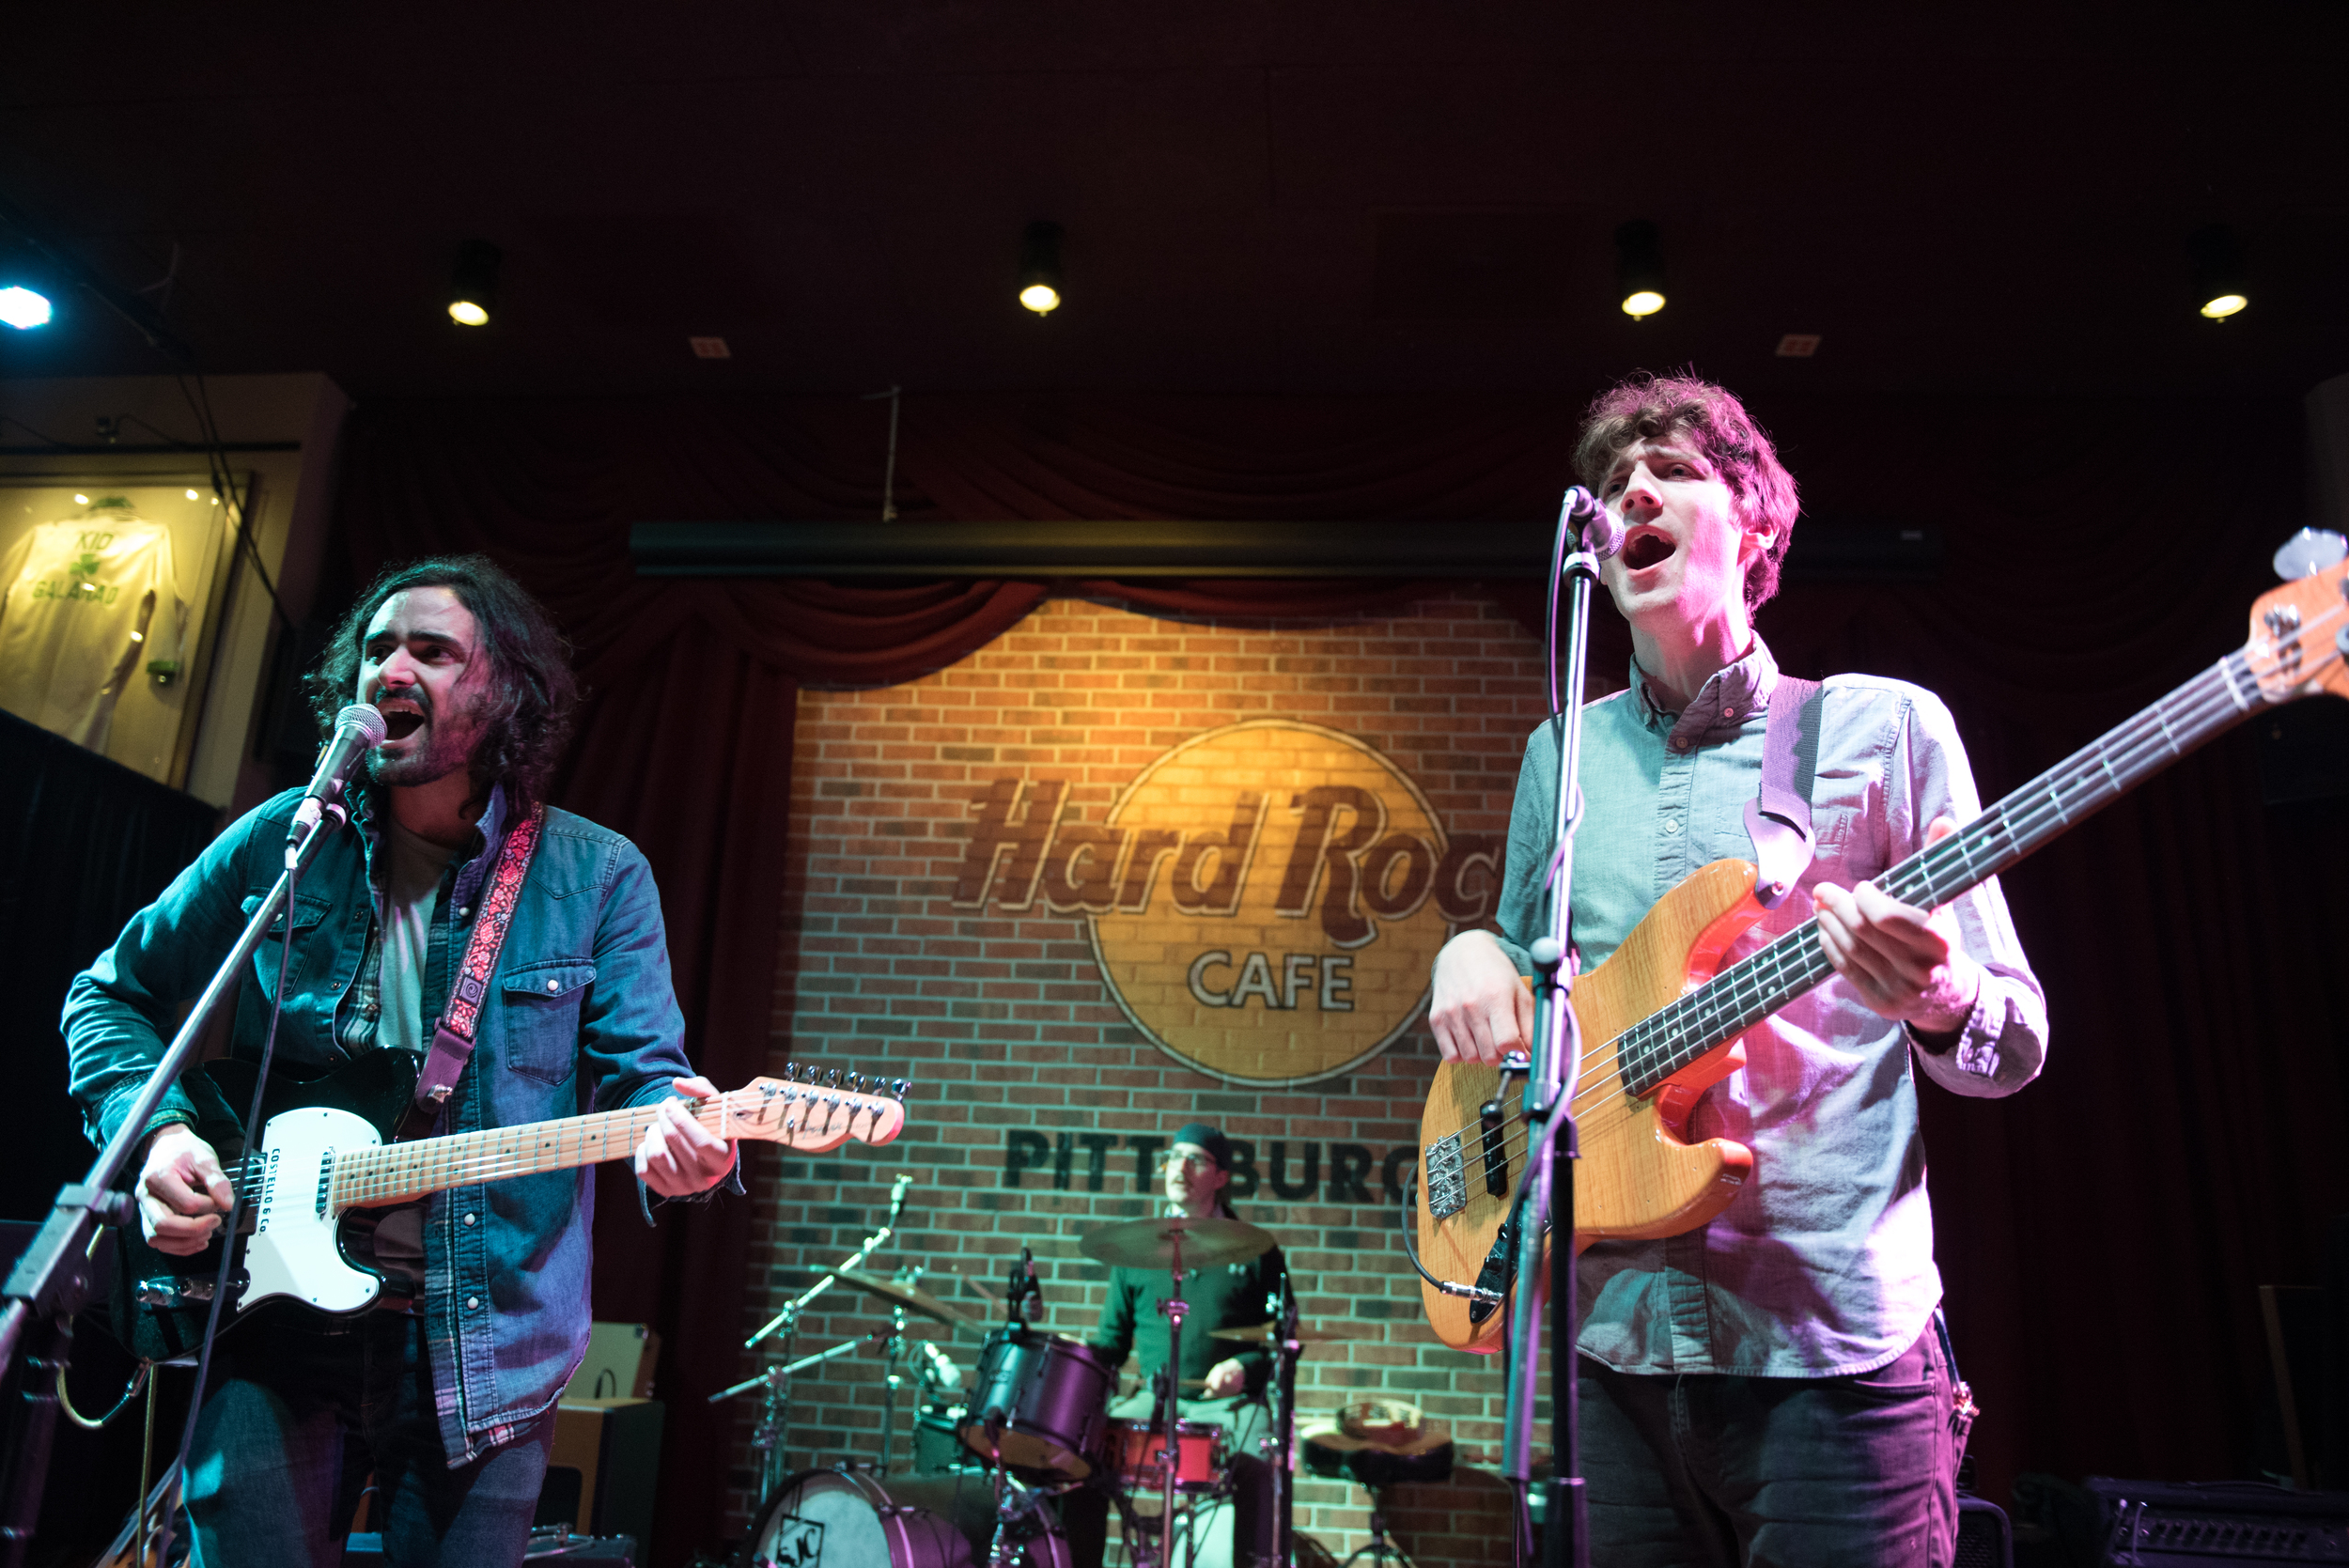 Cure Rock - Hard Rock Cafe - 3.26.15 - 114.jpg